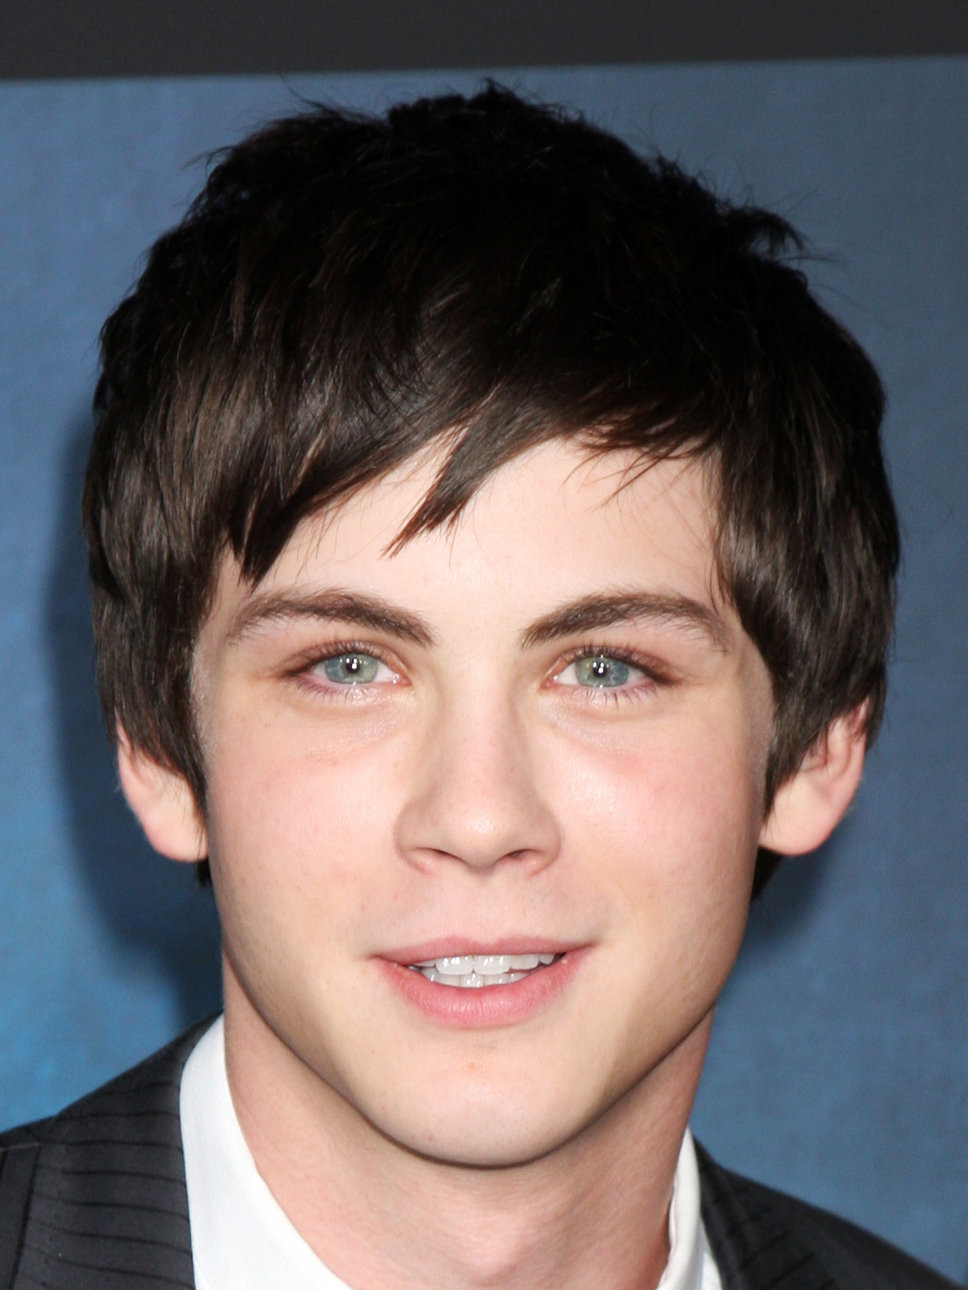 Cute Teen Boy Haircuts  Cool Hairstyles for Teenage Guys You Might Try